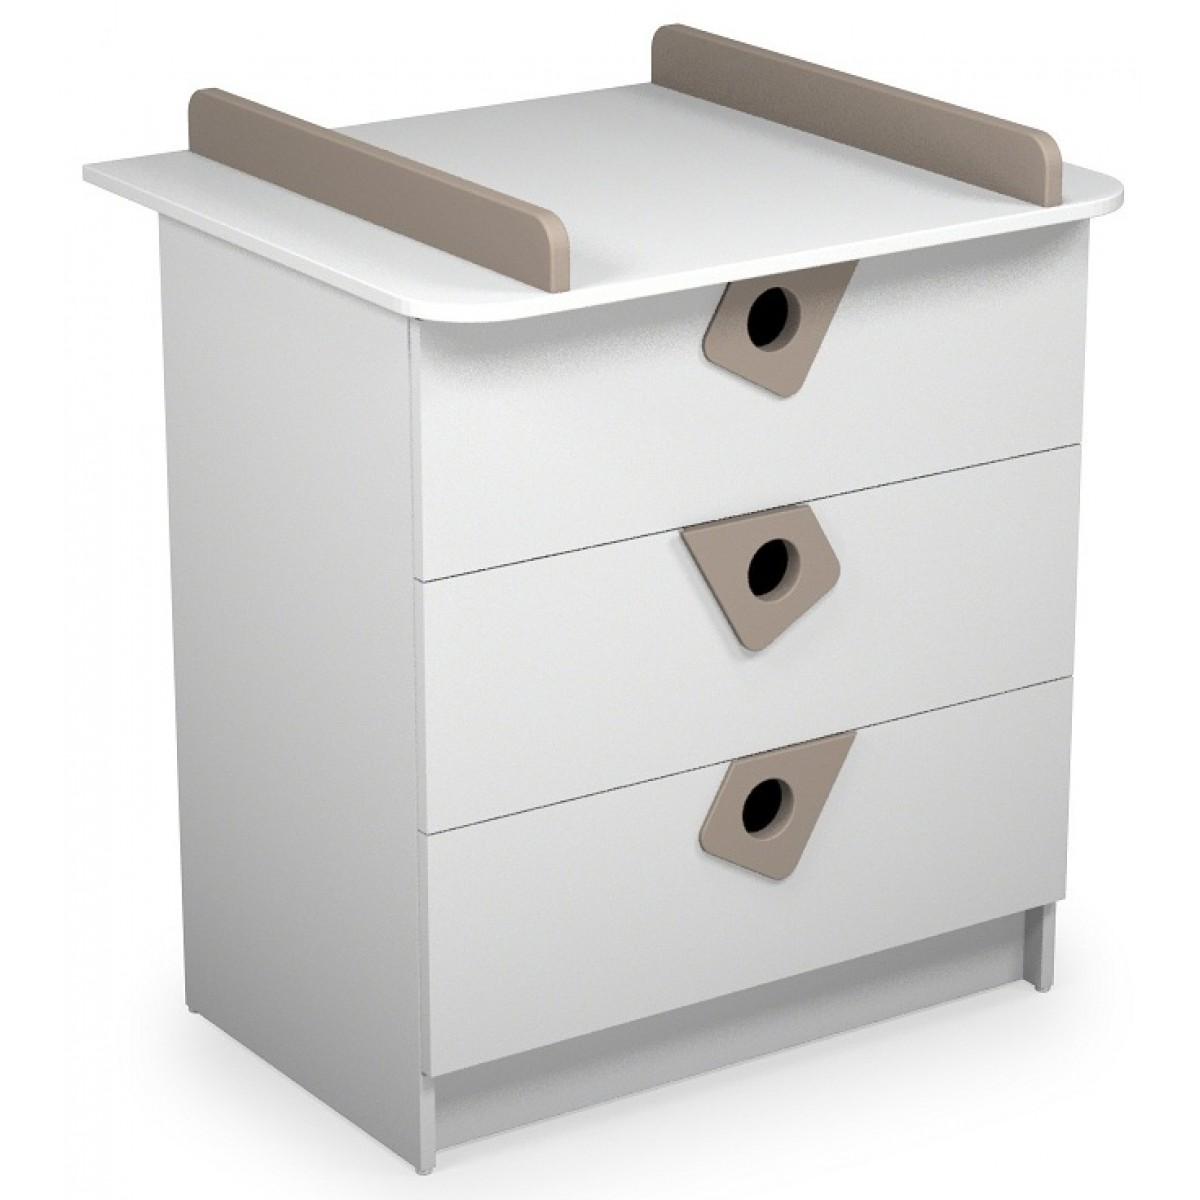 Atelier commode langer b b blanc et taupe t4 for Meuble a langer